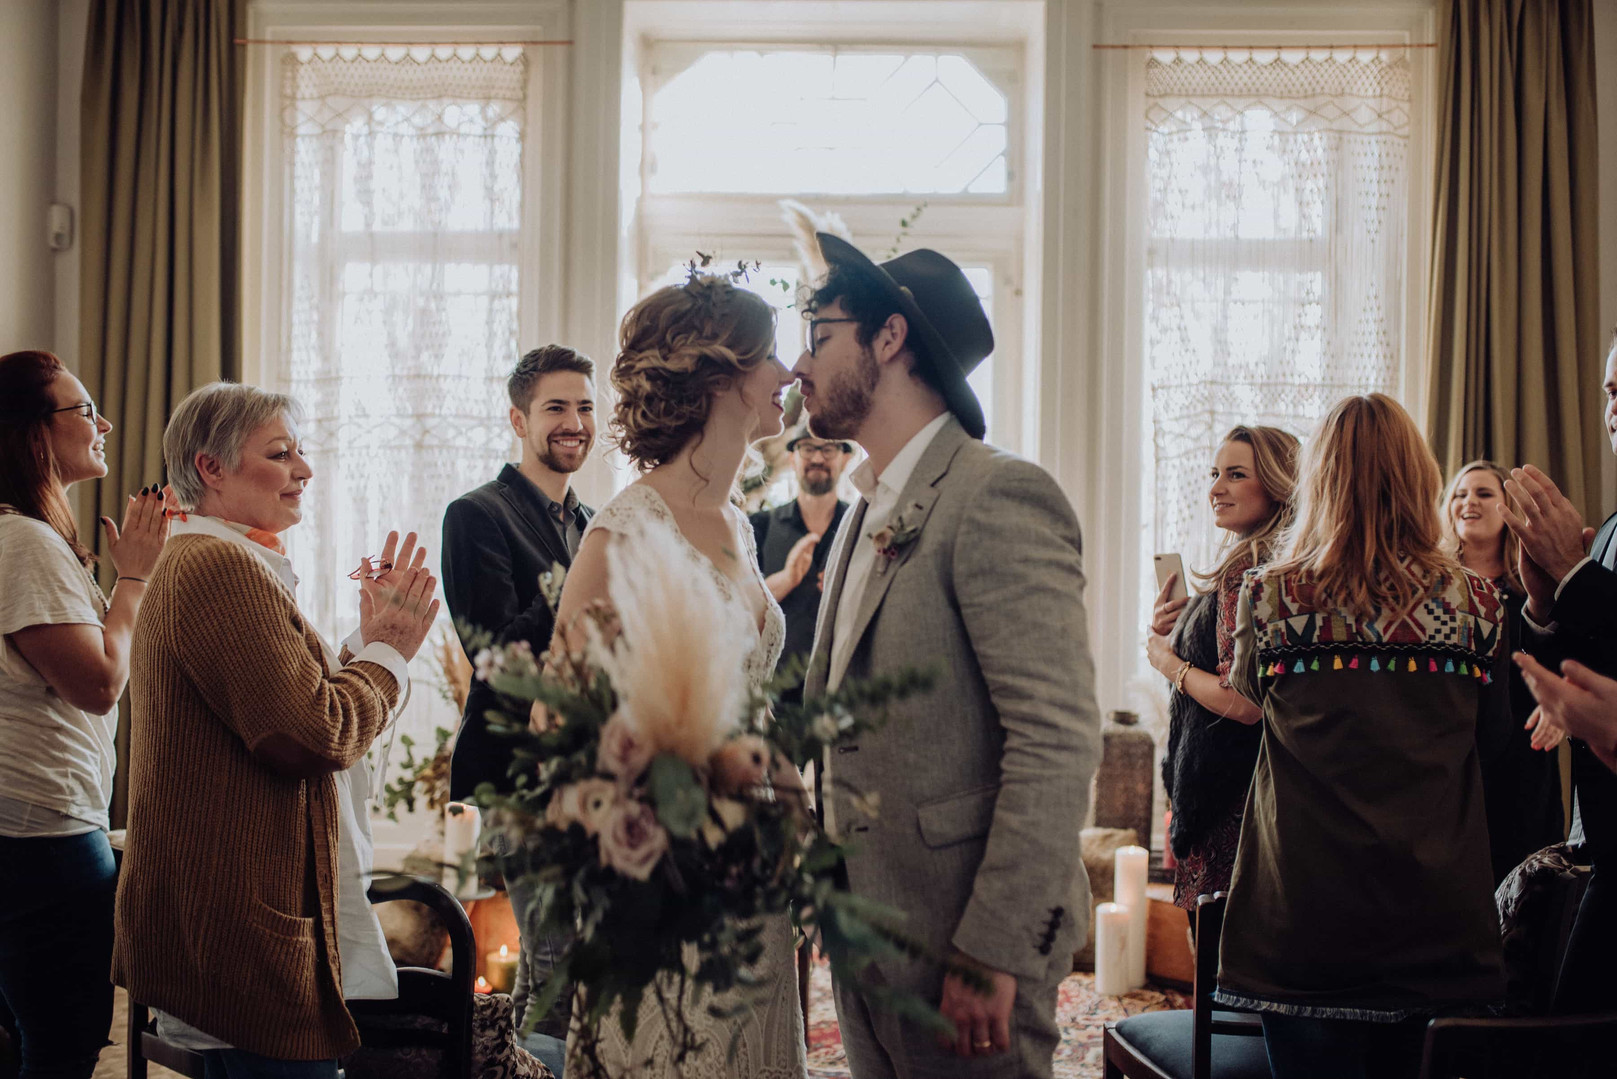 Bohemian Wedding, Traurednerin Nora Brandenburger